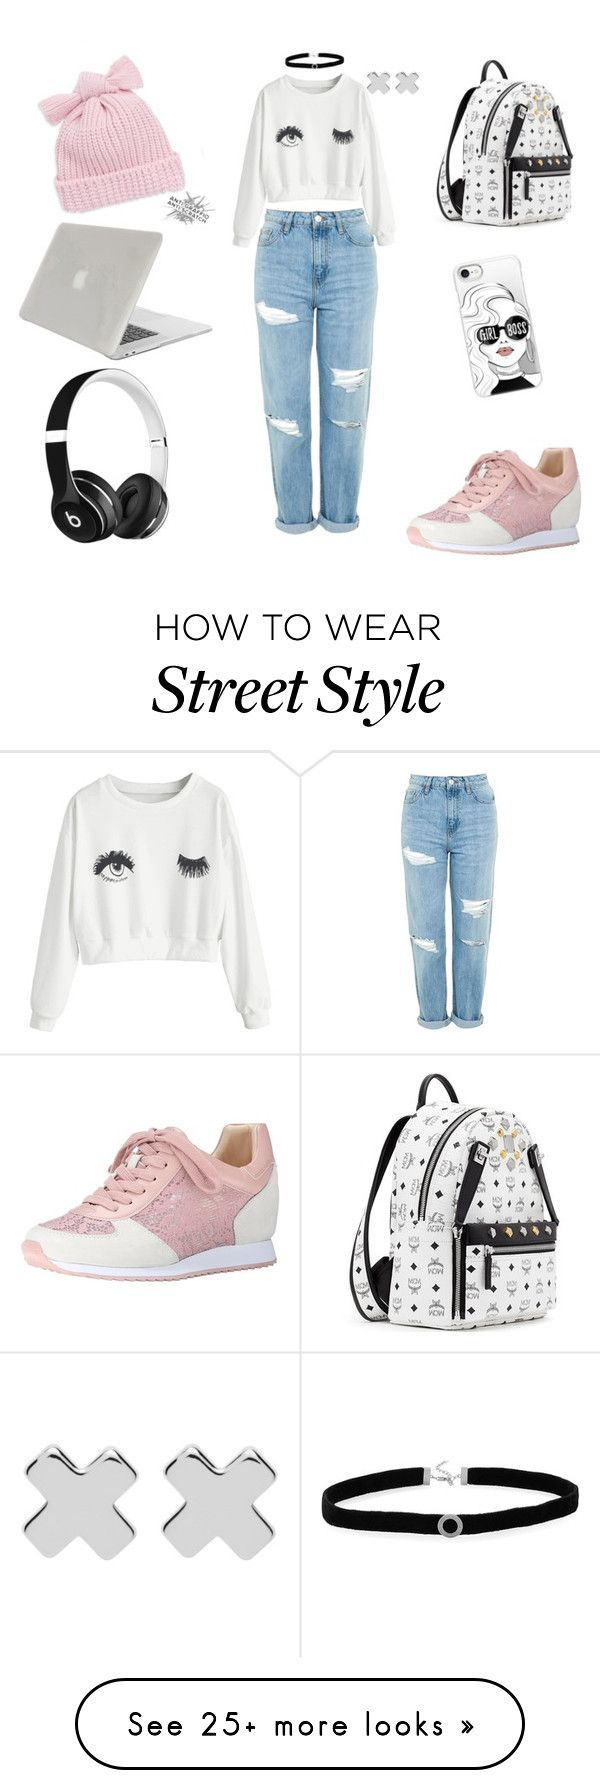 """""""Back to School"""" by maxine-01 on Polyvore featuring Topshop, Nine West, Beats by Dr. Dre, MCM, Helene Berman, Casetify, Witchery, BillyTheTree and Tucano"""